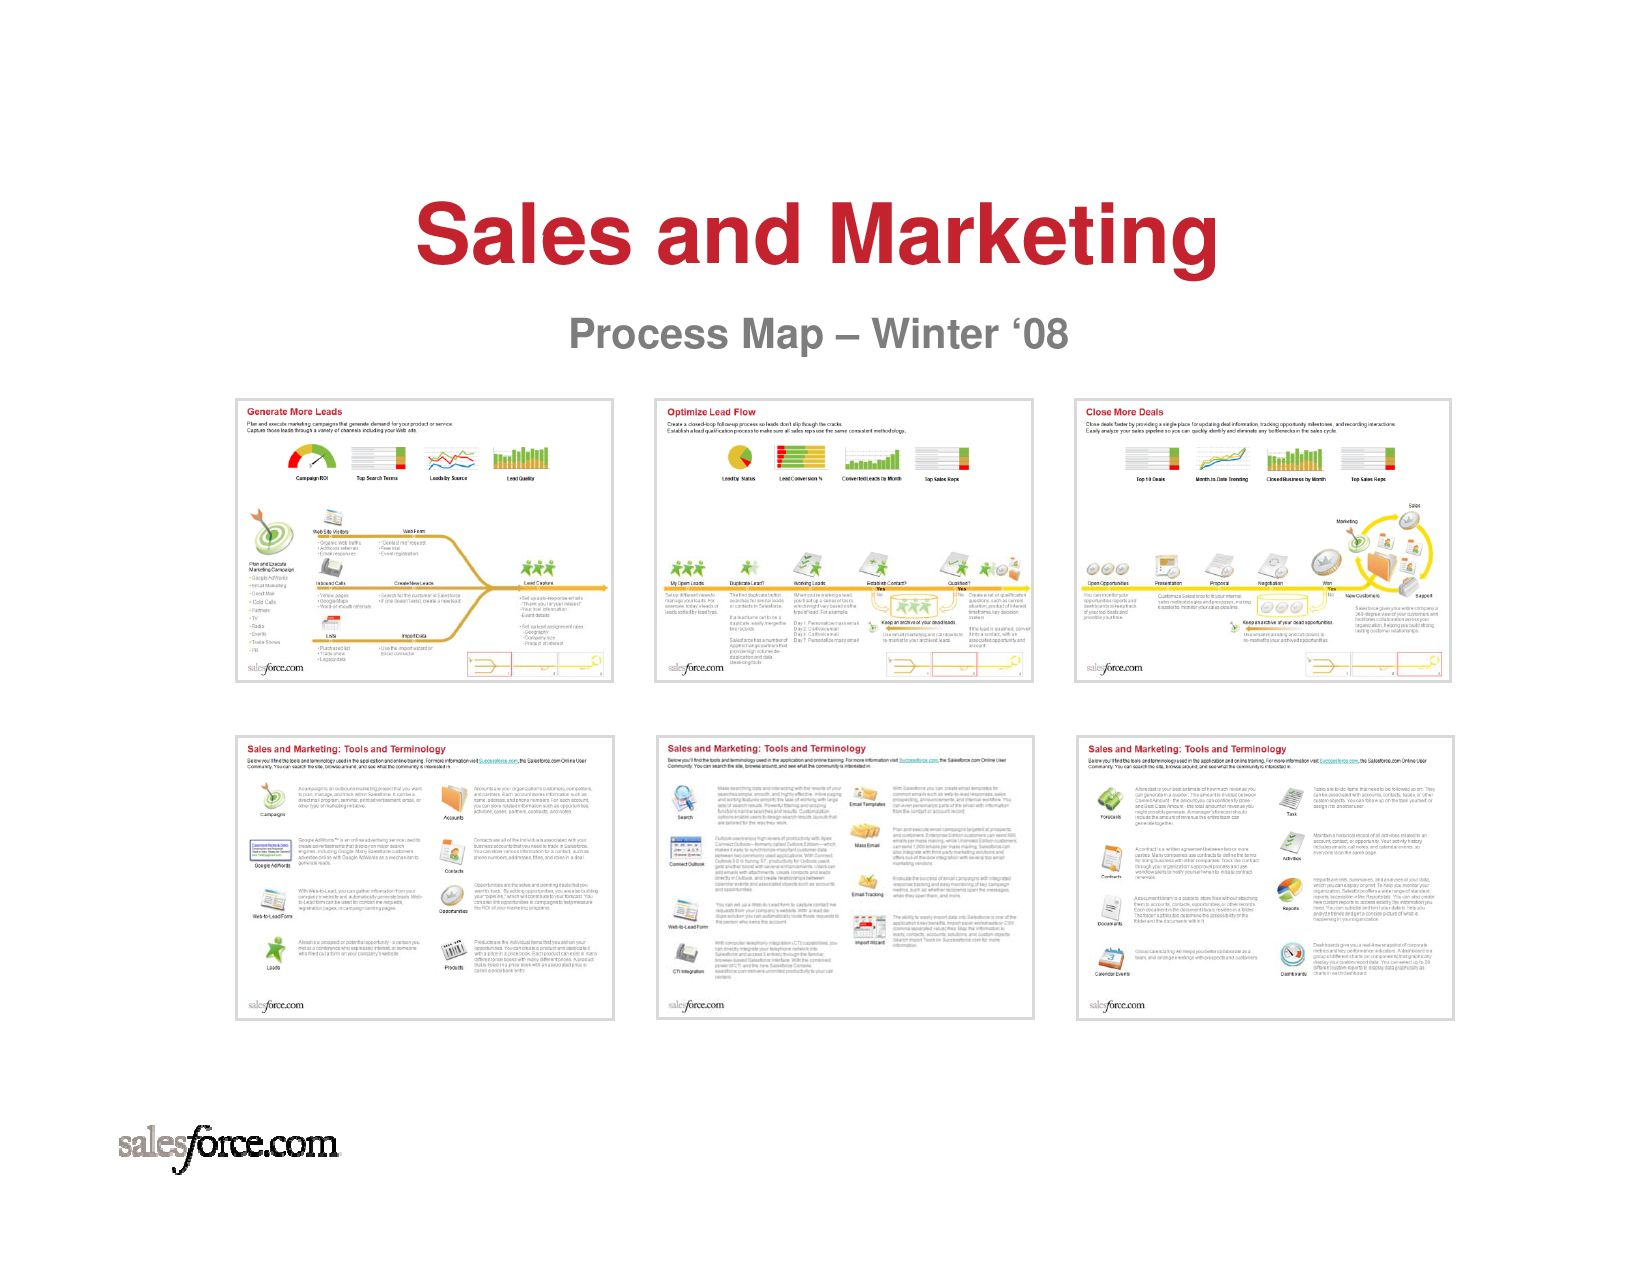 Sales Amp Marketing Process Map By Salesforce Com By